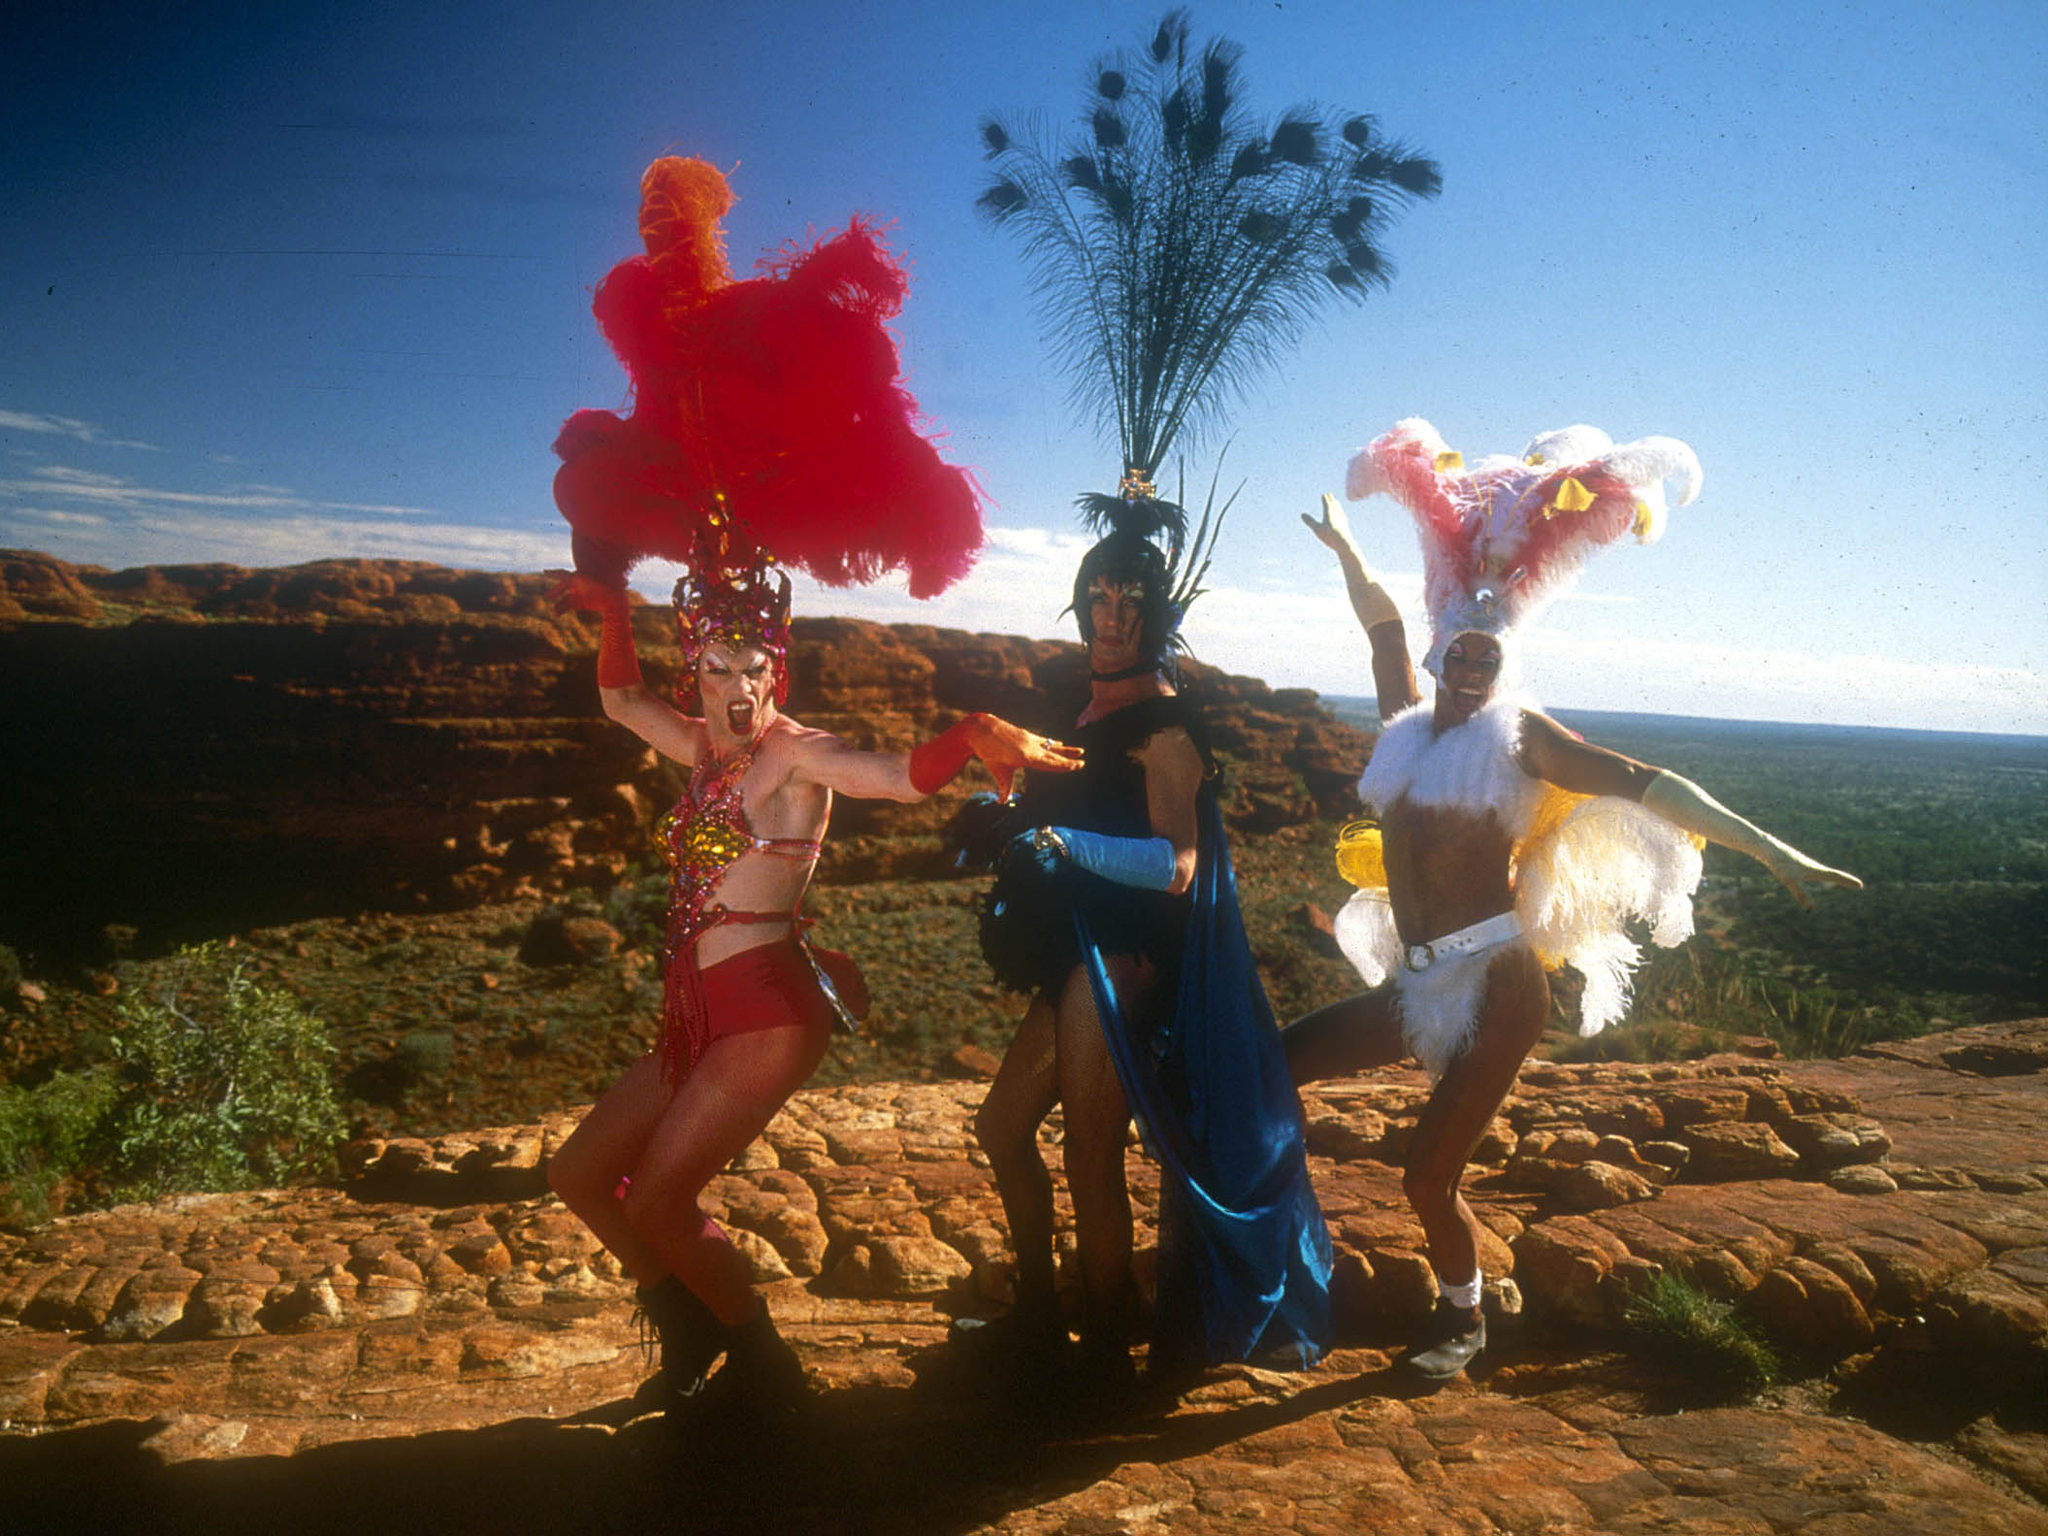 The best gay and lesbian movies, LGBT films, The Adventures of Priscilla Queen of the Desert